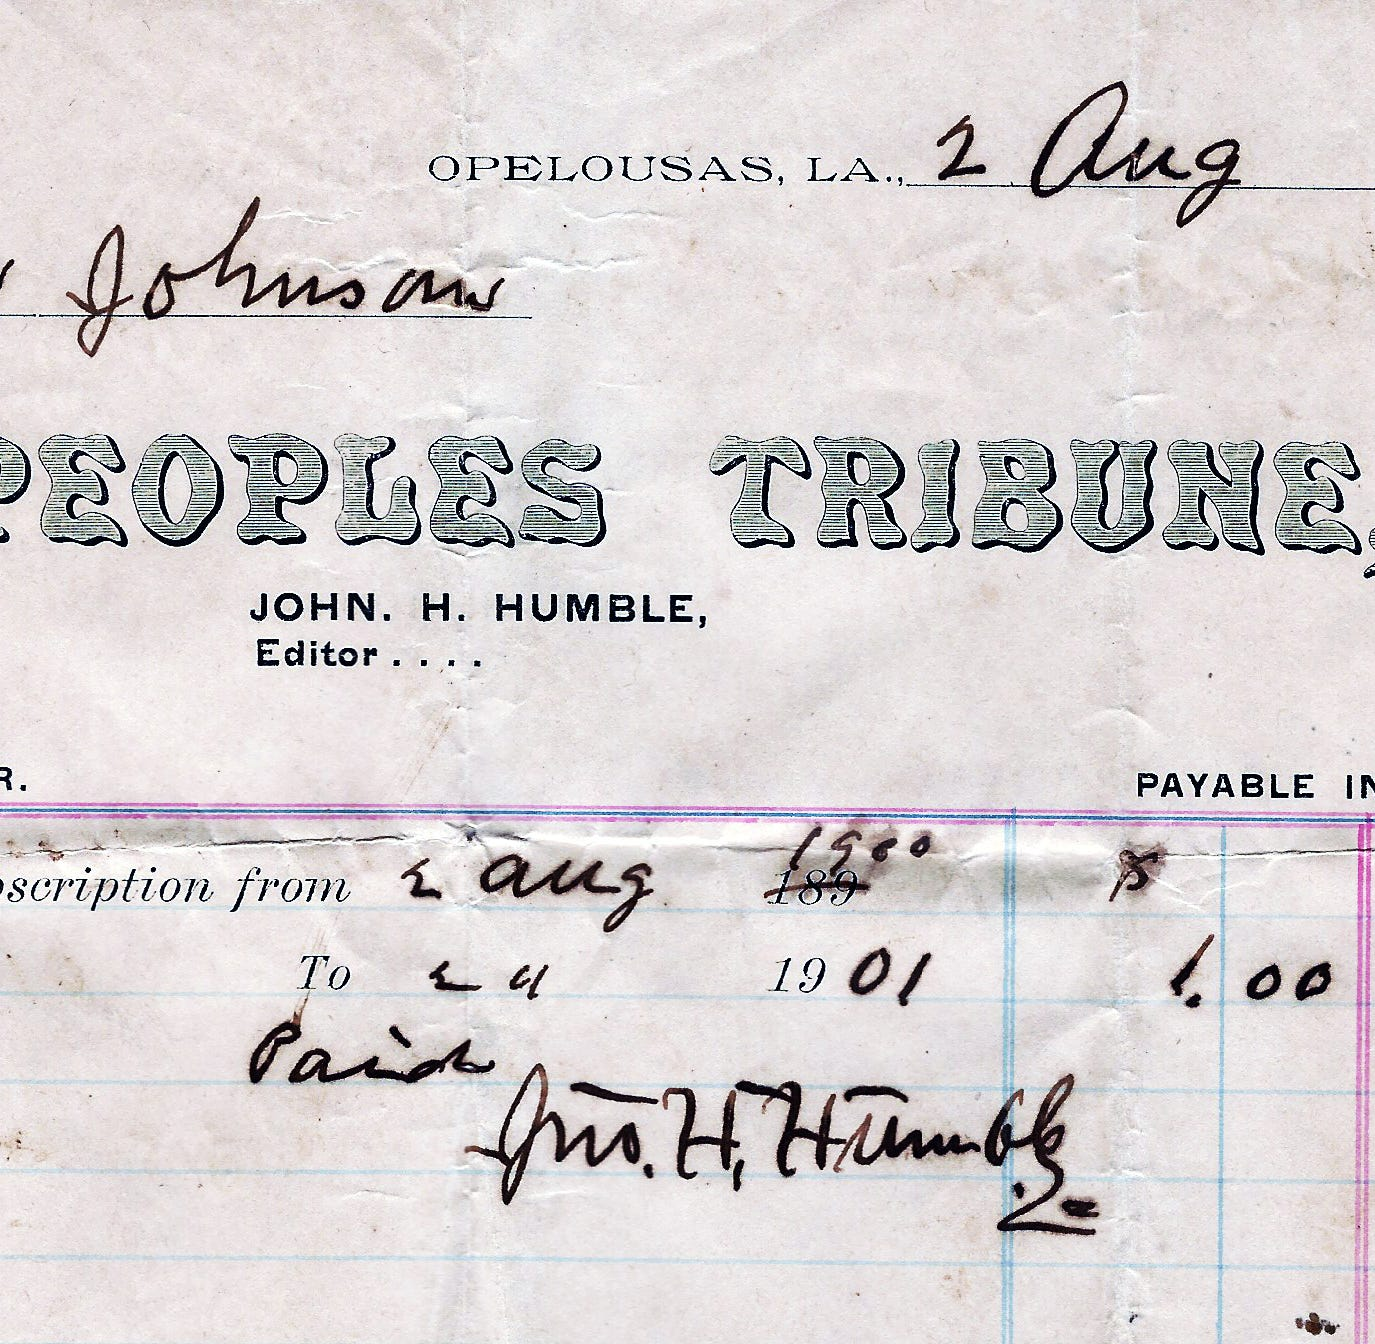 Parlons Opelousas: John H. Humble and The People's Tribune